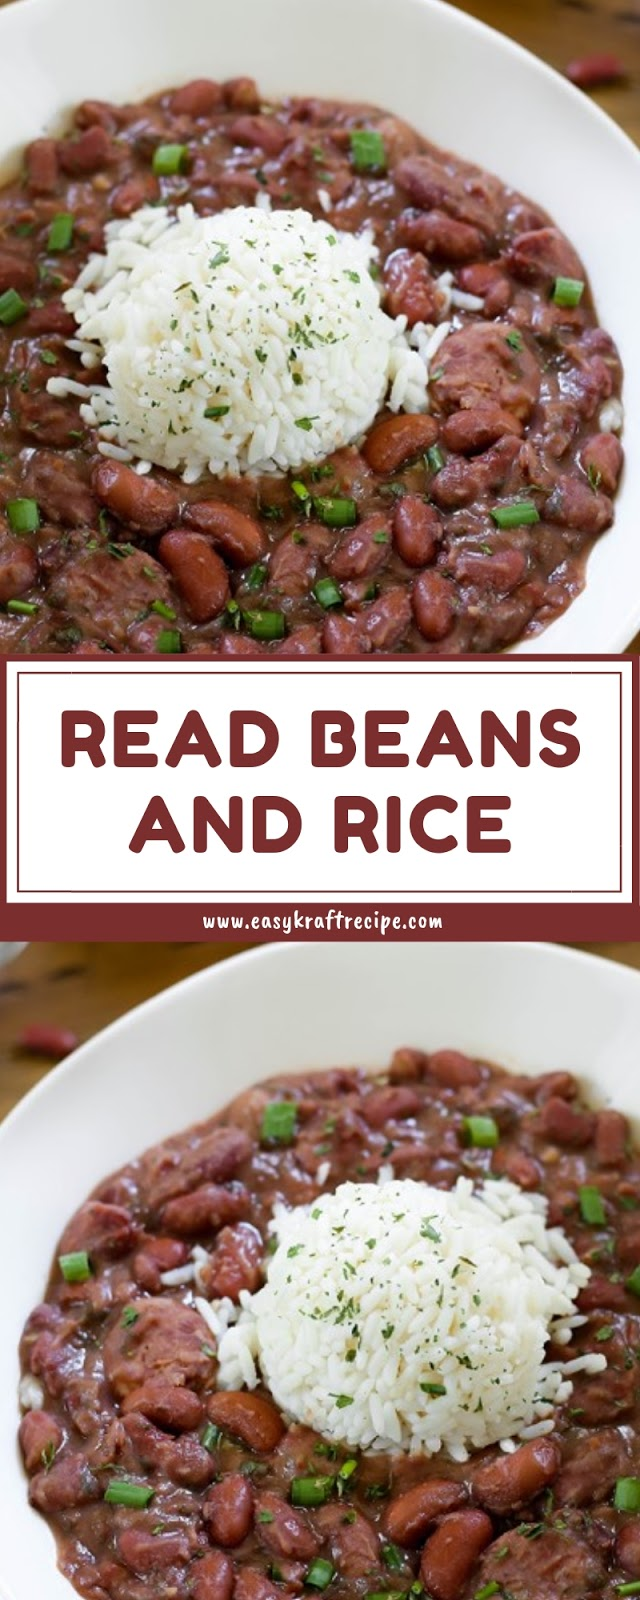 READ BEANS AND RICE